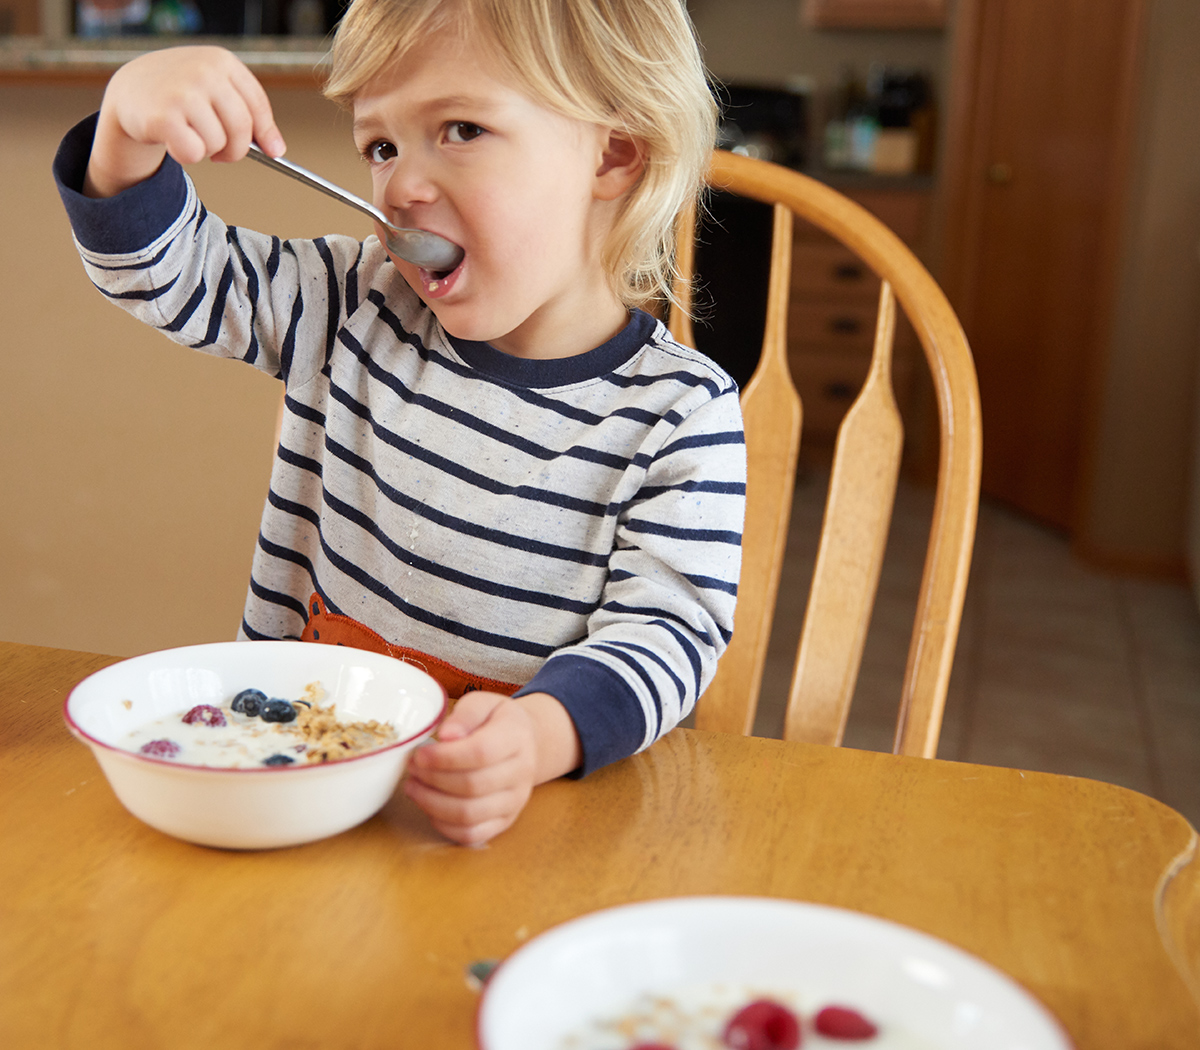 Young boy enjoys a bowl of milk and cereal for breakfast.